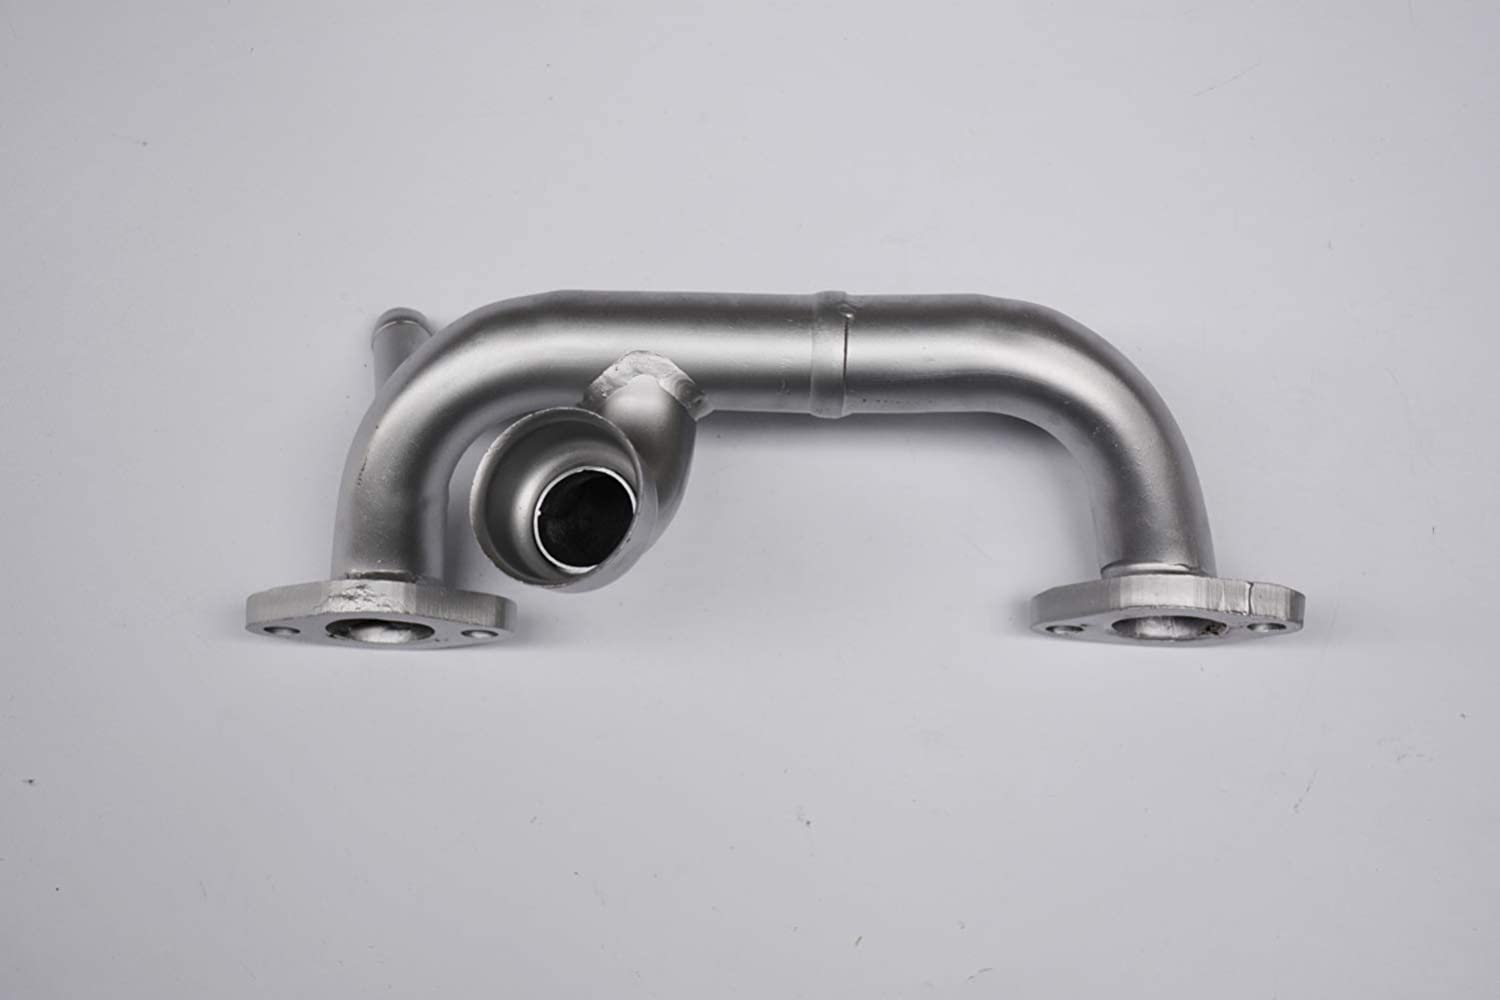 Engine Water Coolant Inlet Pipe For Mitsubishi Pajero Montero V73 2000-2007